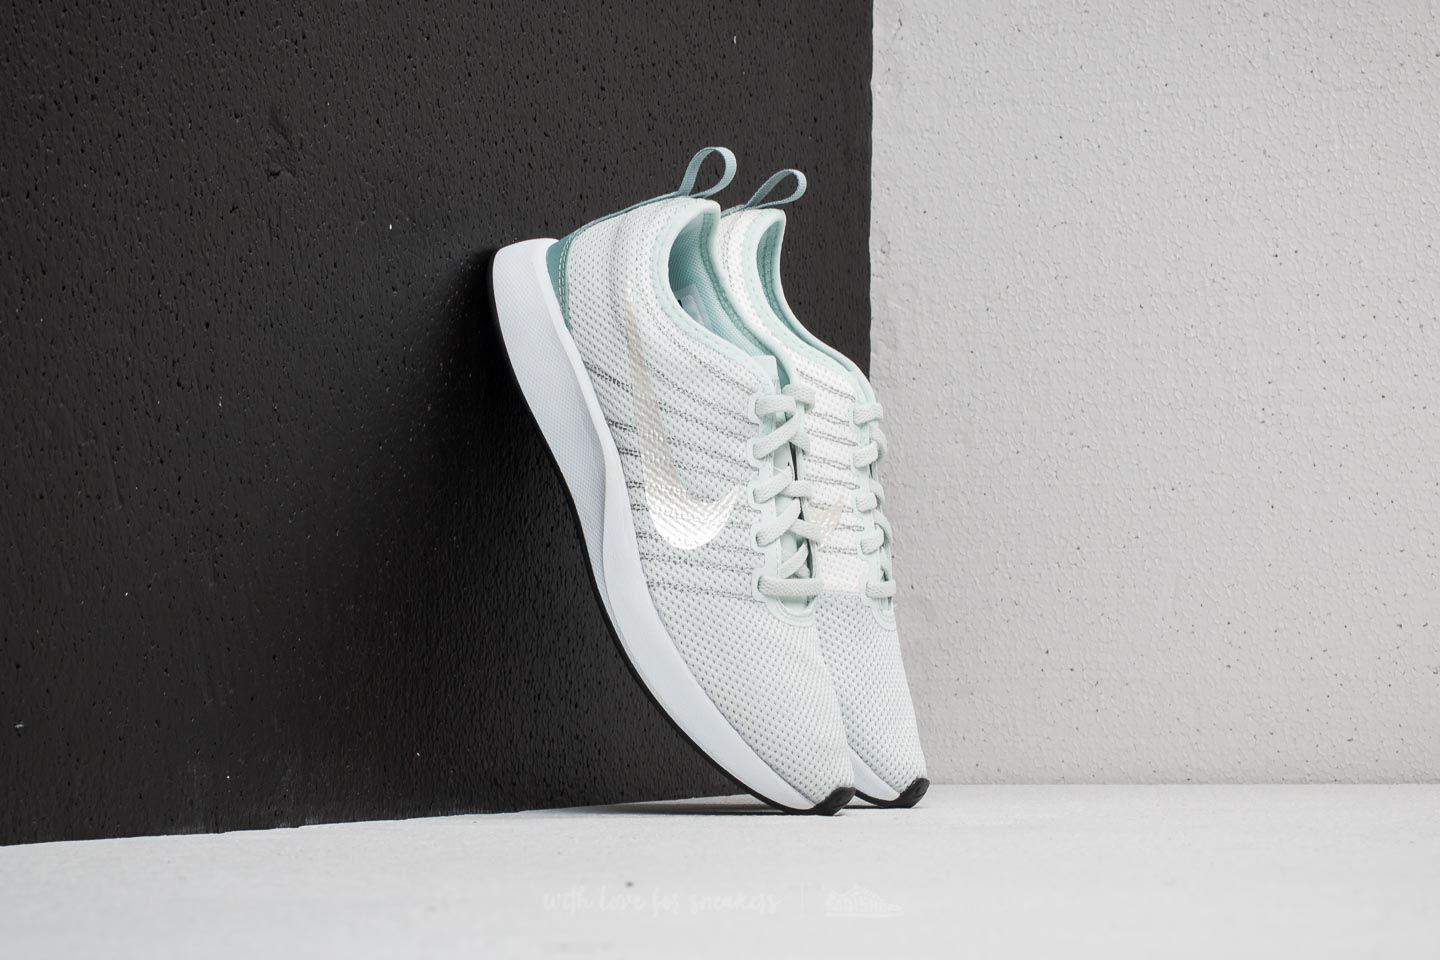 Lyst - Nike Wmns Dualtone Racer Barely Grey  Sail-light Pumice in Gray ca50595a4b77